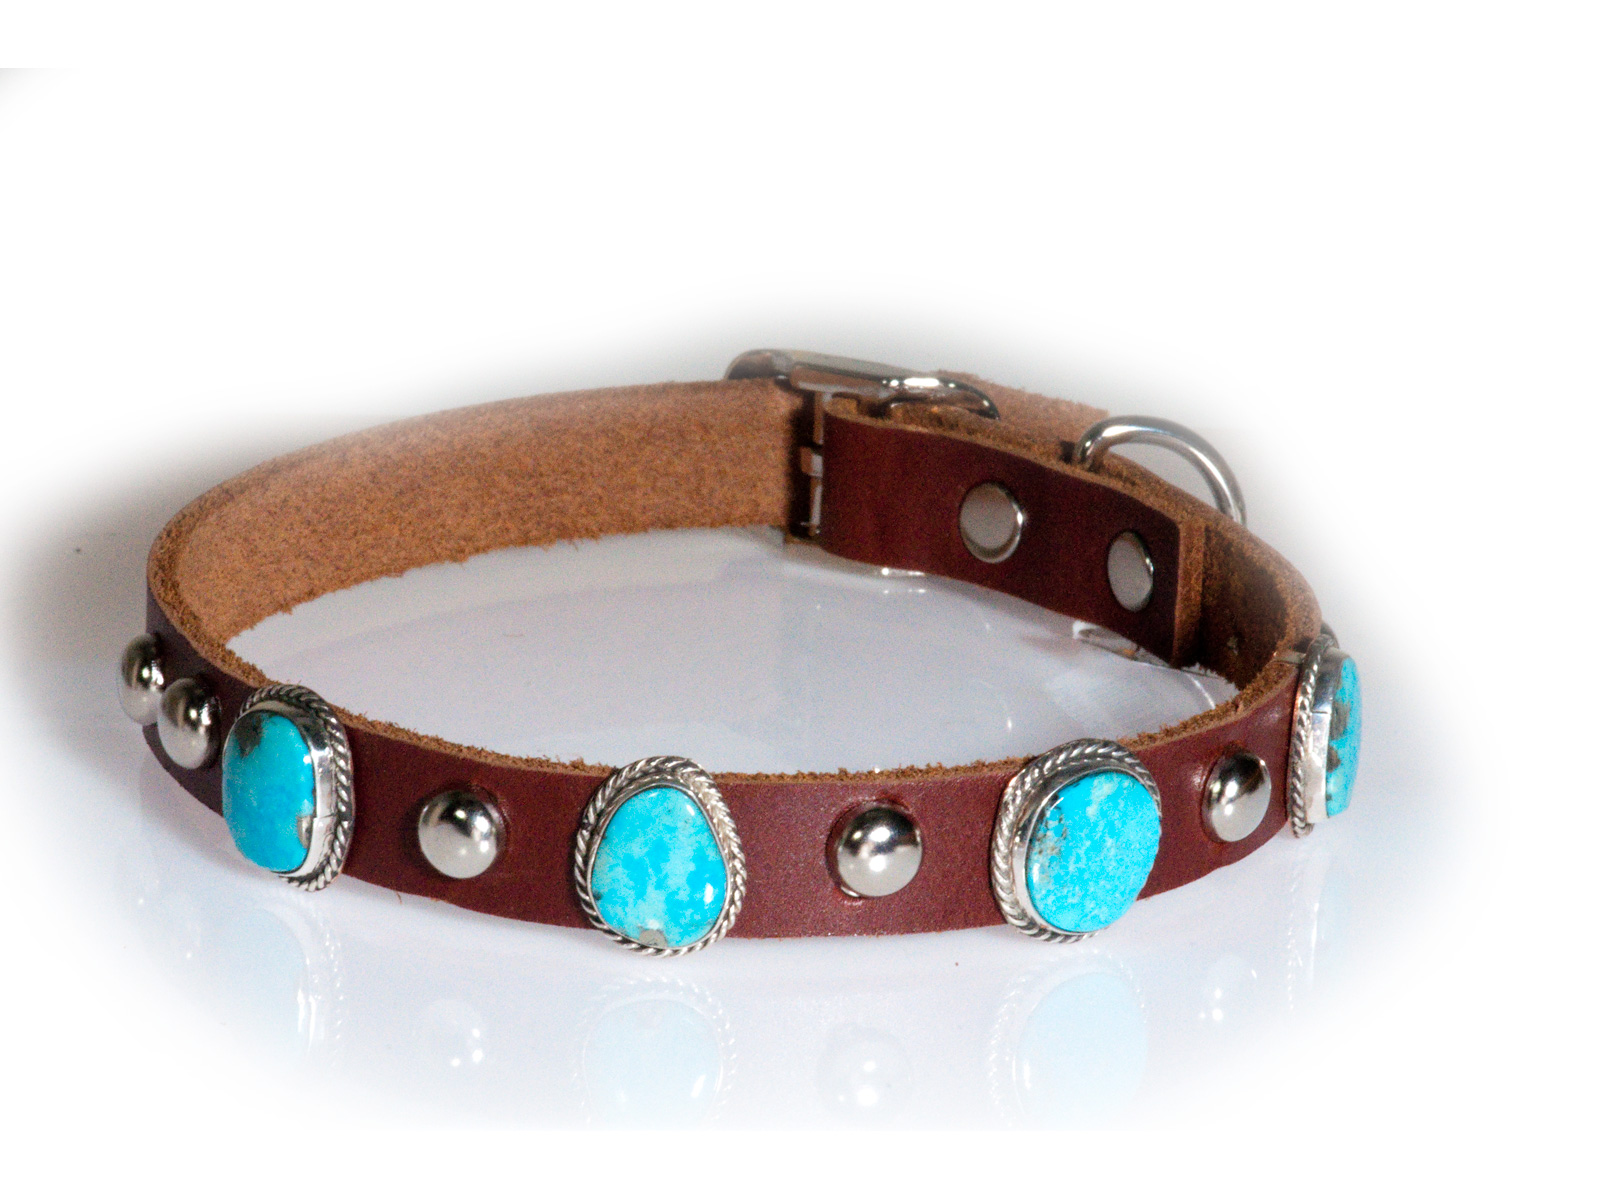 4 Stone Turquoise Leather Dog Collar